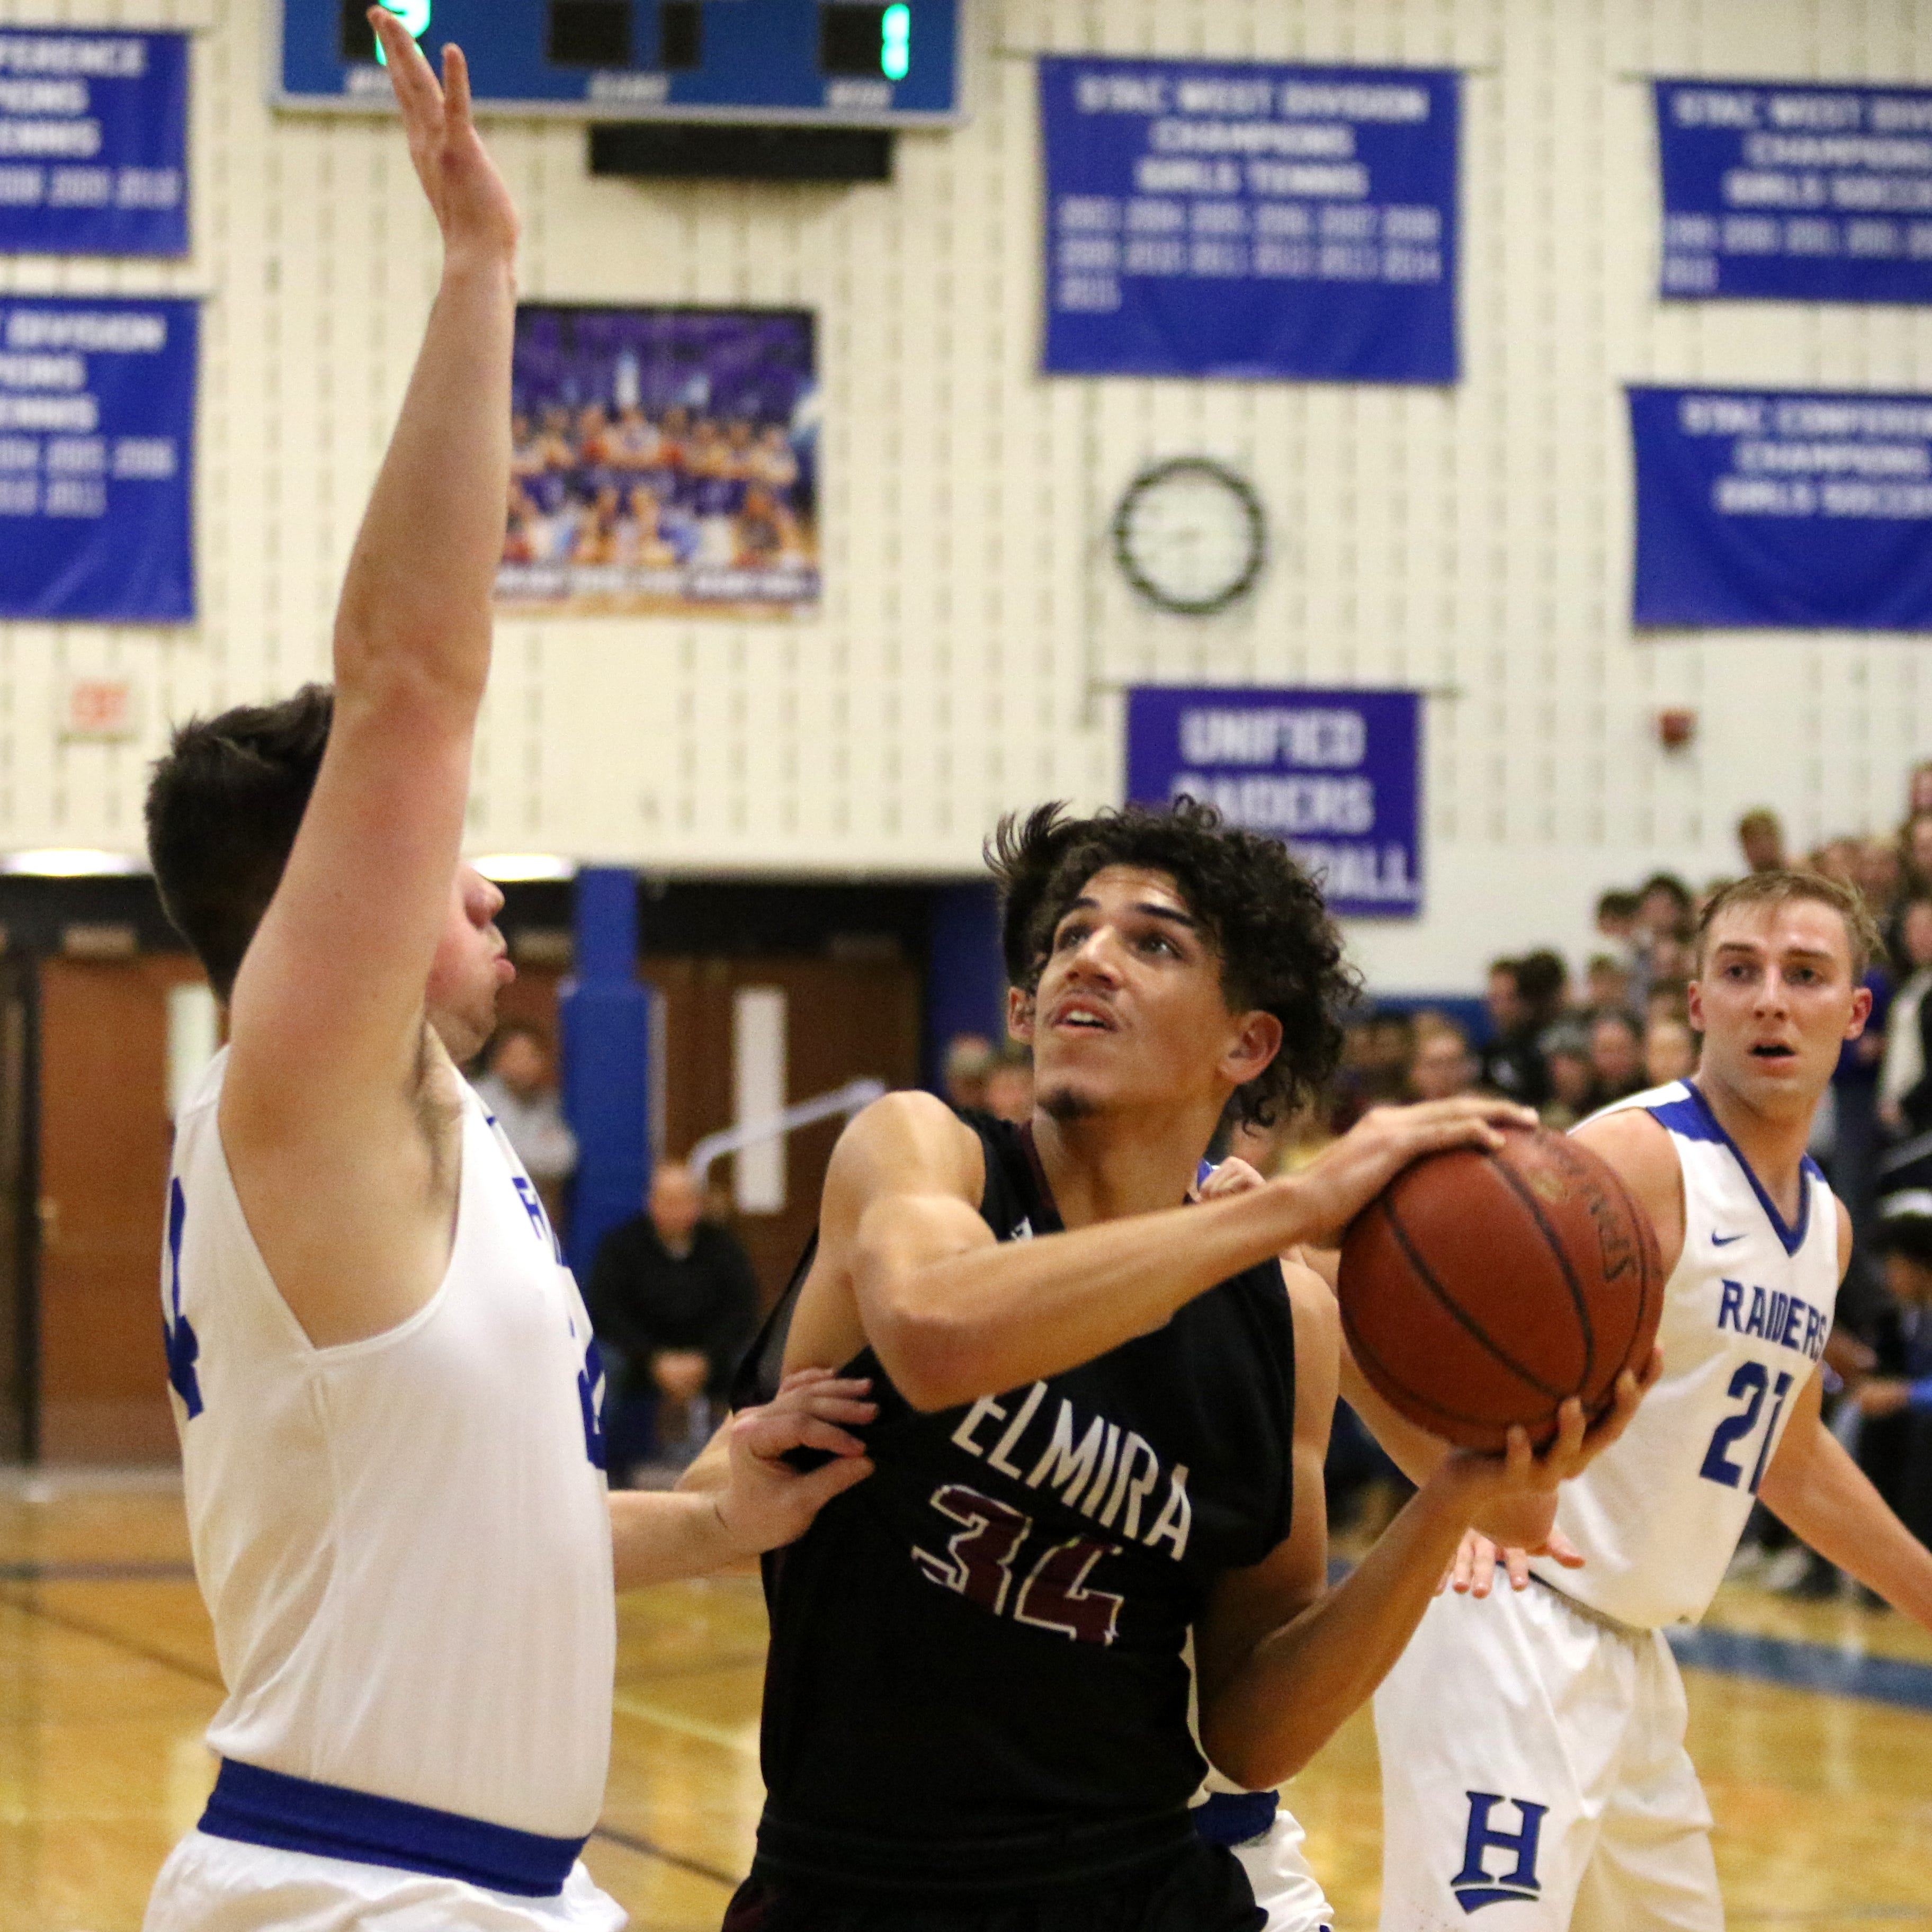 Elmira boys edge Horseheads to continue strong start to season